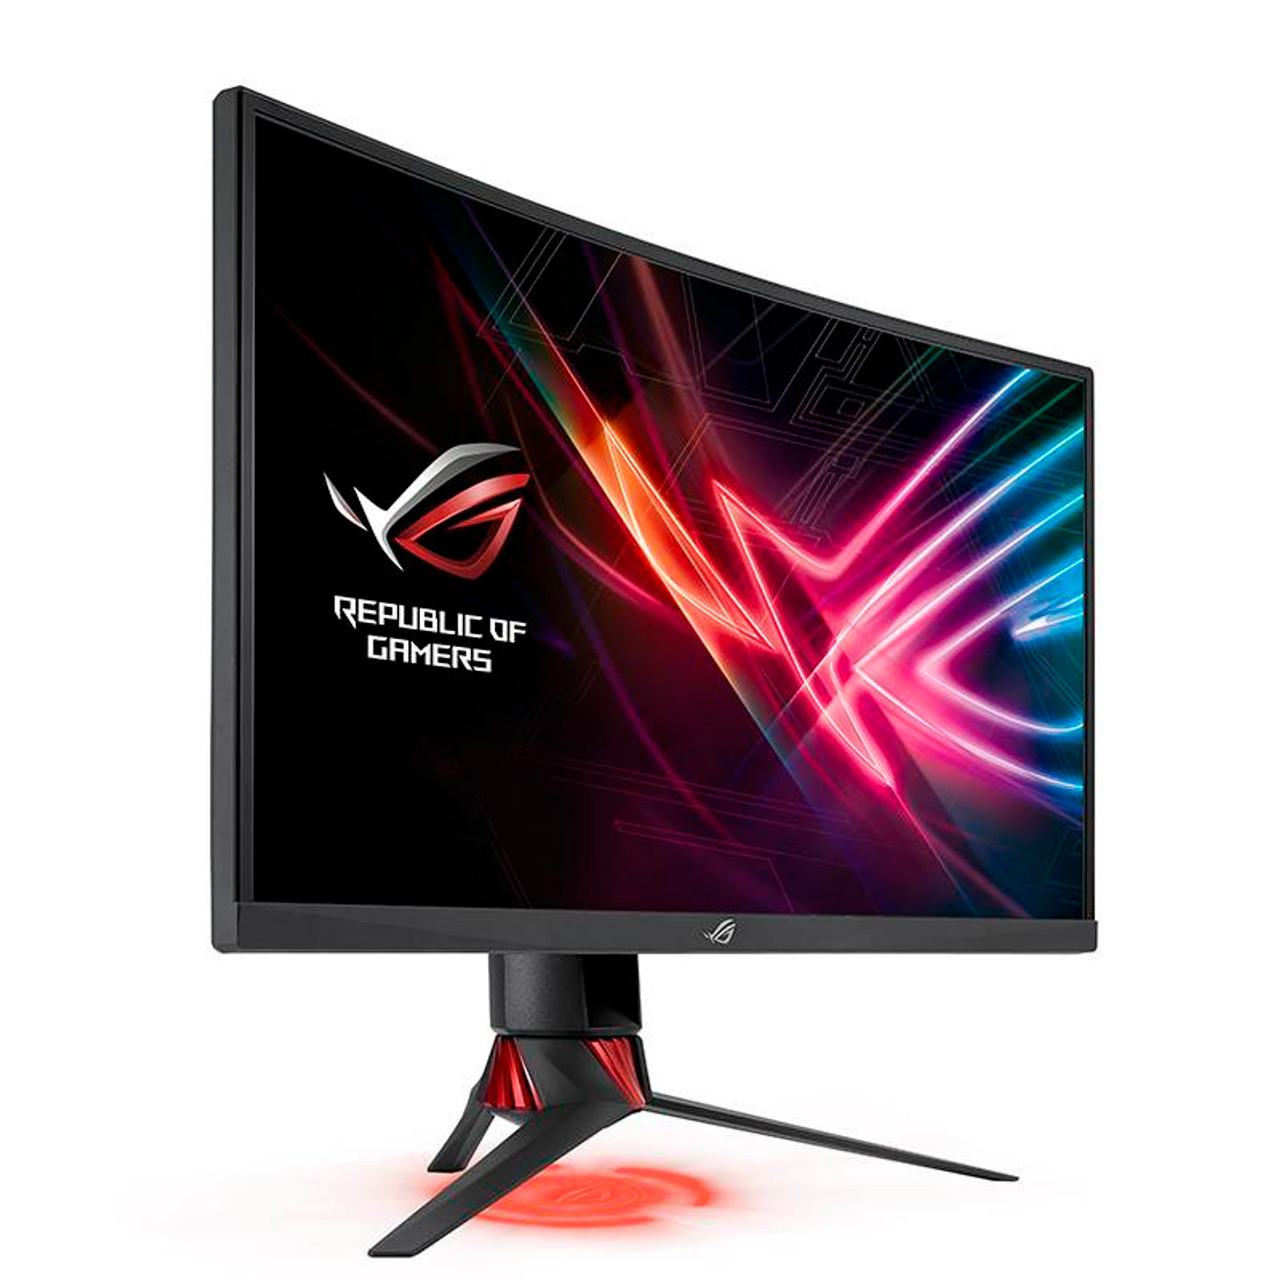 Product image for Asus ROG XG27VQ FHD 144Hz FreeSync 27in Monitor | CX Computer Superstore